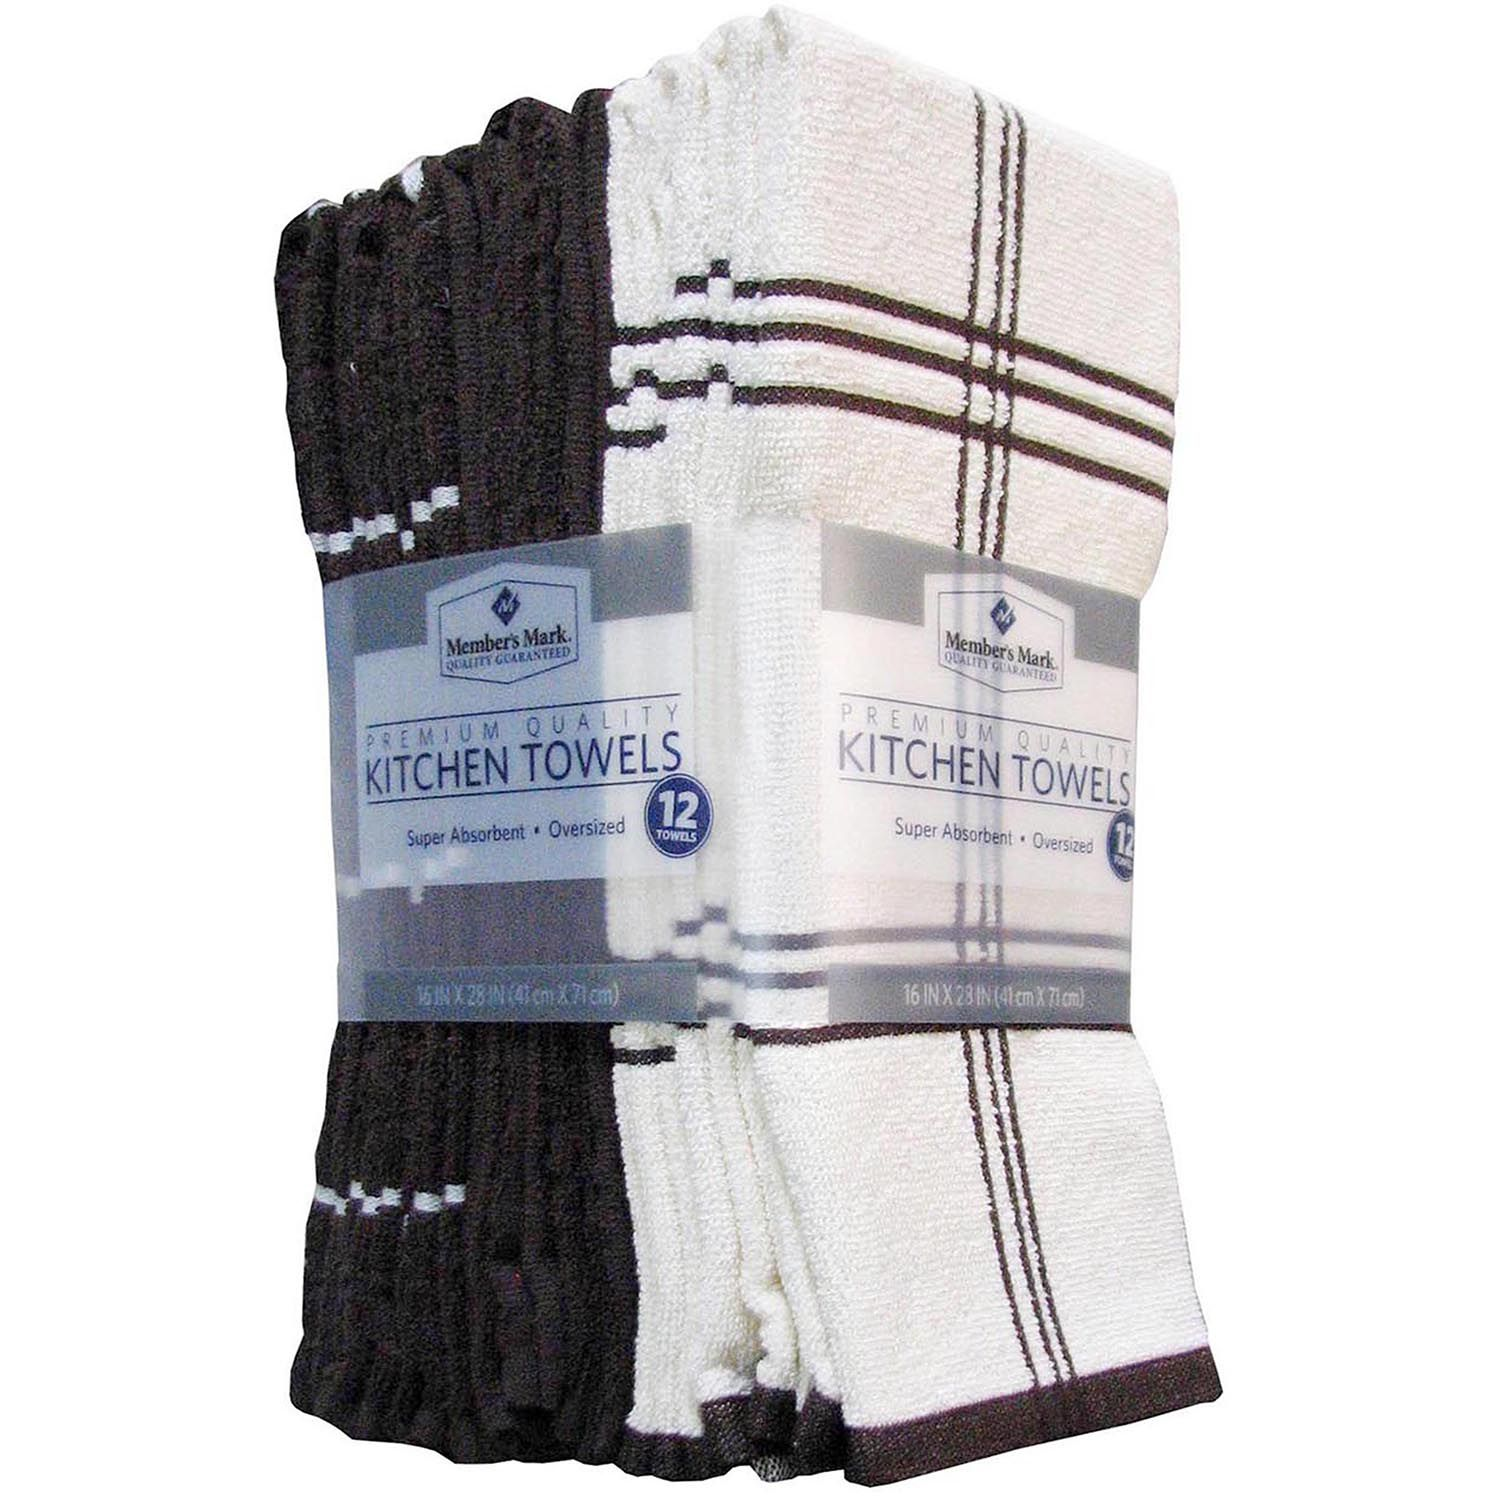 Member's Mark Kitchen Towels, 12-pack, Chocolate